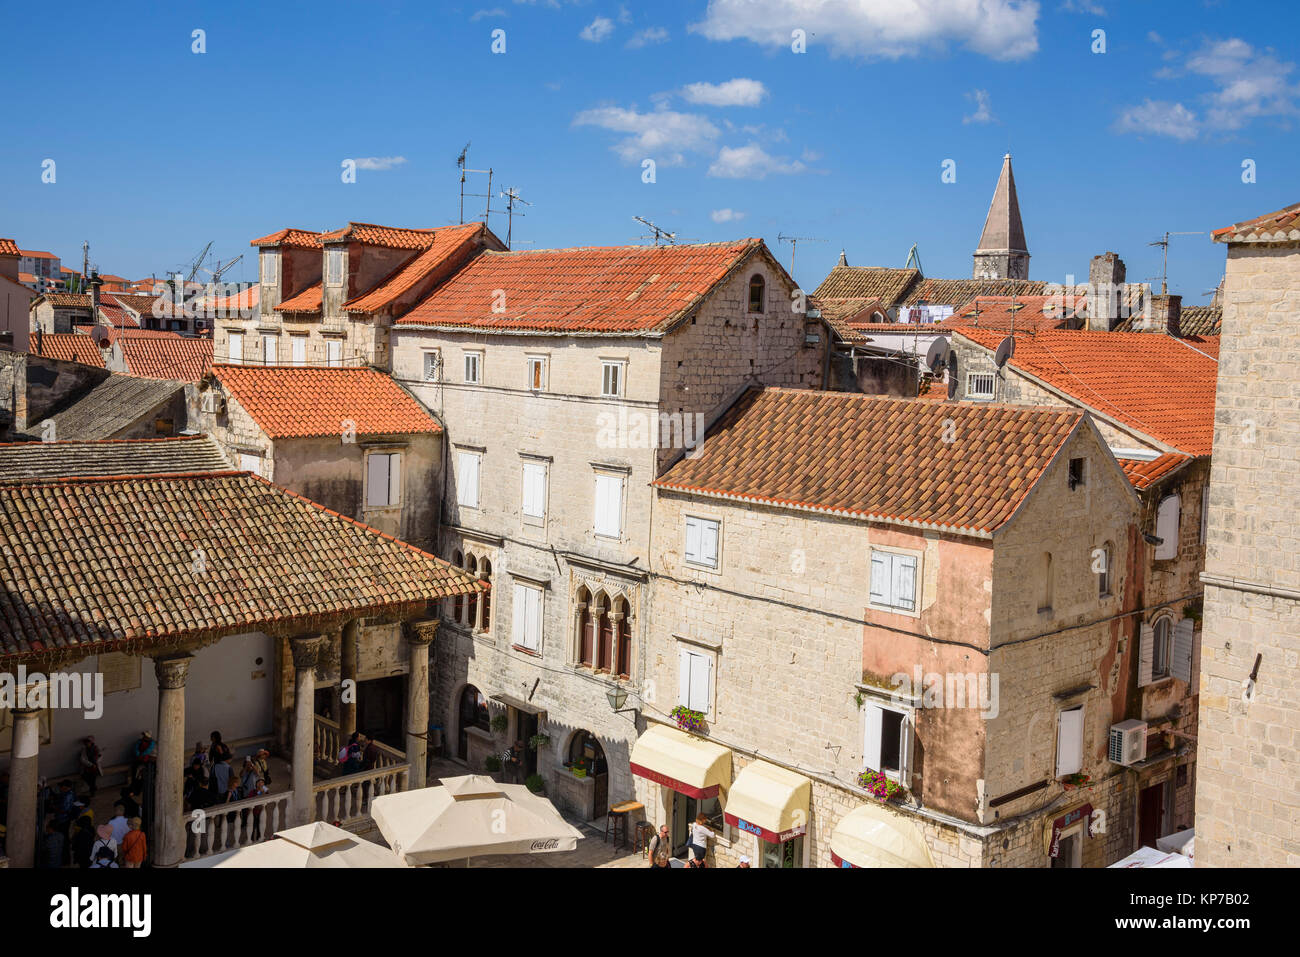 View from the bell tower, Cathedral of St Lawrence, Trogir Old Town, Croatia Stock Photo